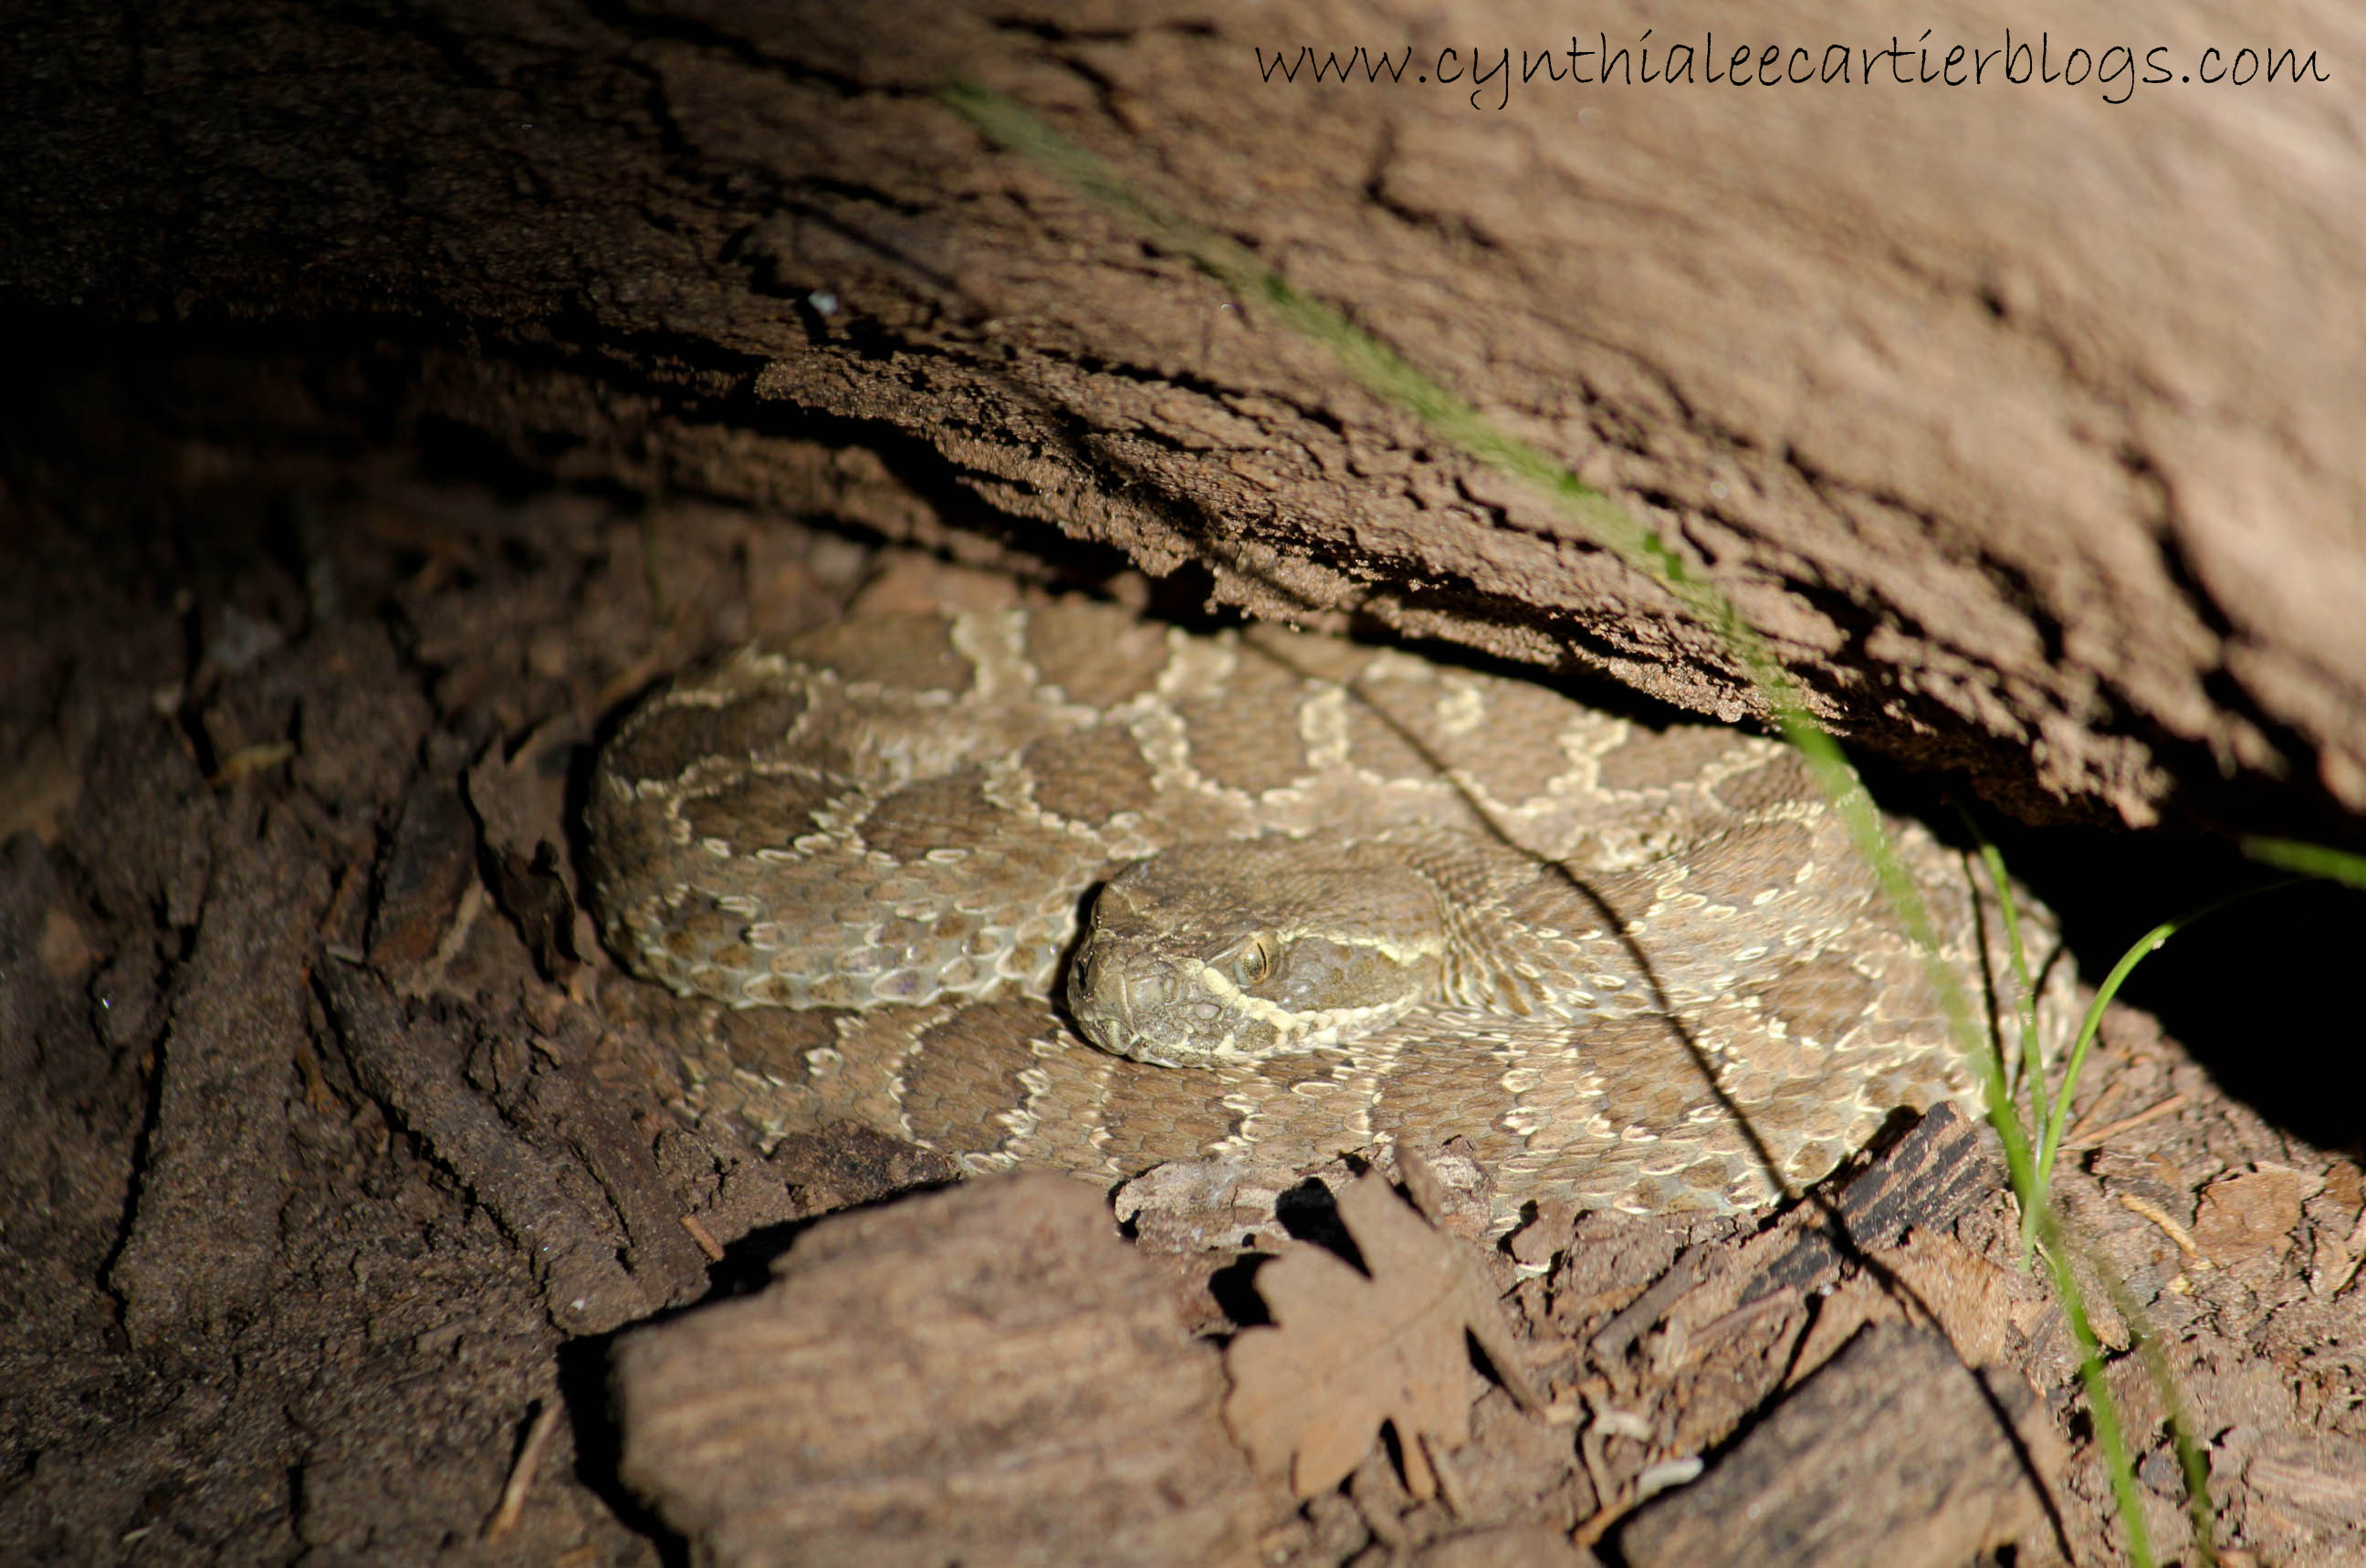 Closeup of a baby rattlesnake under a log by the Rio Chama River in New Mexico